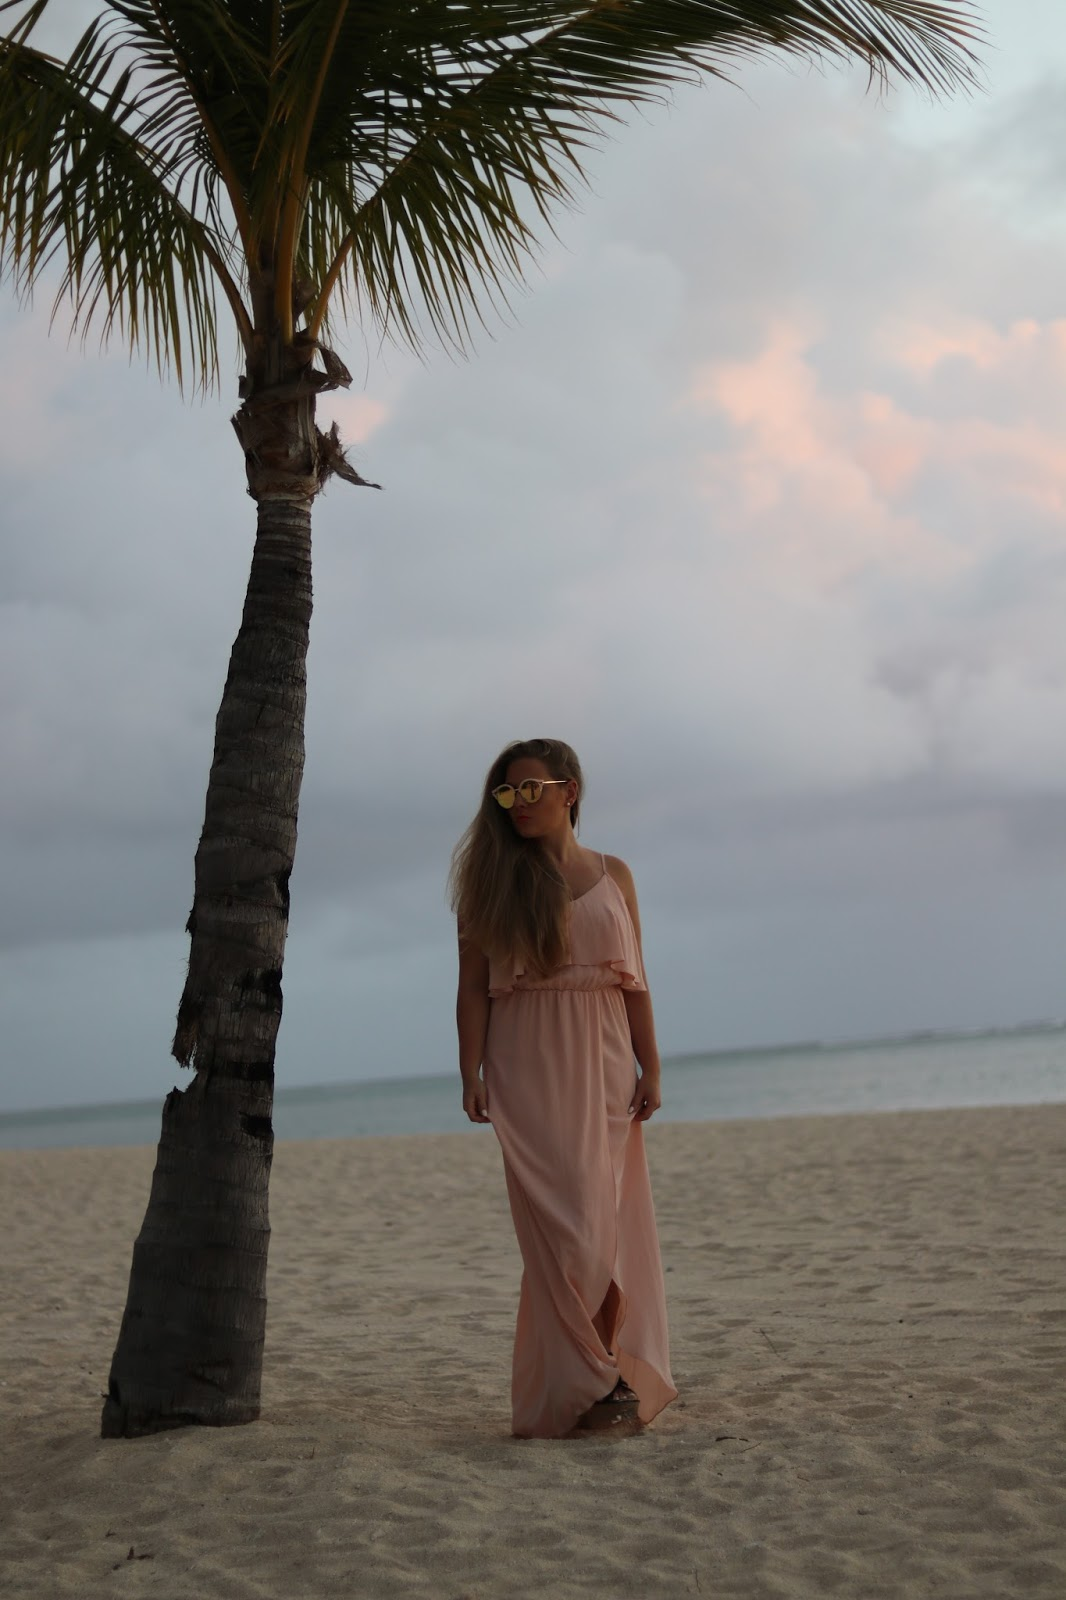 Palm tree and girl in pink dress